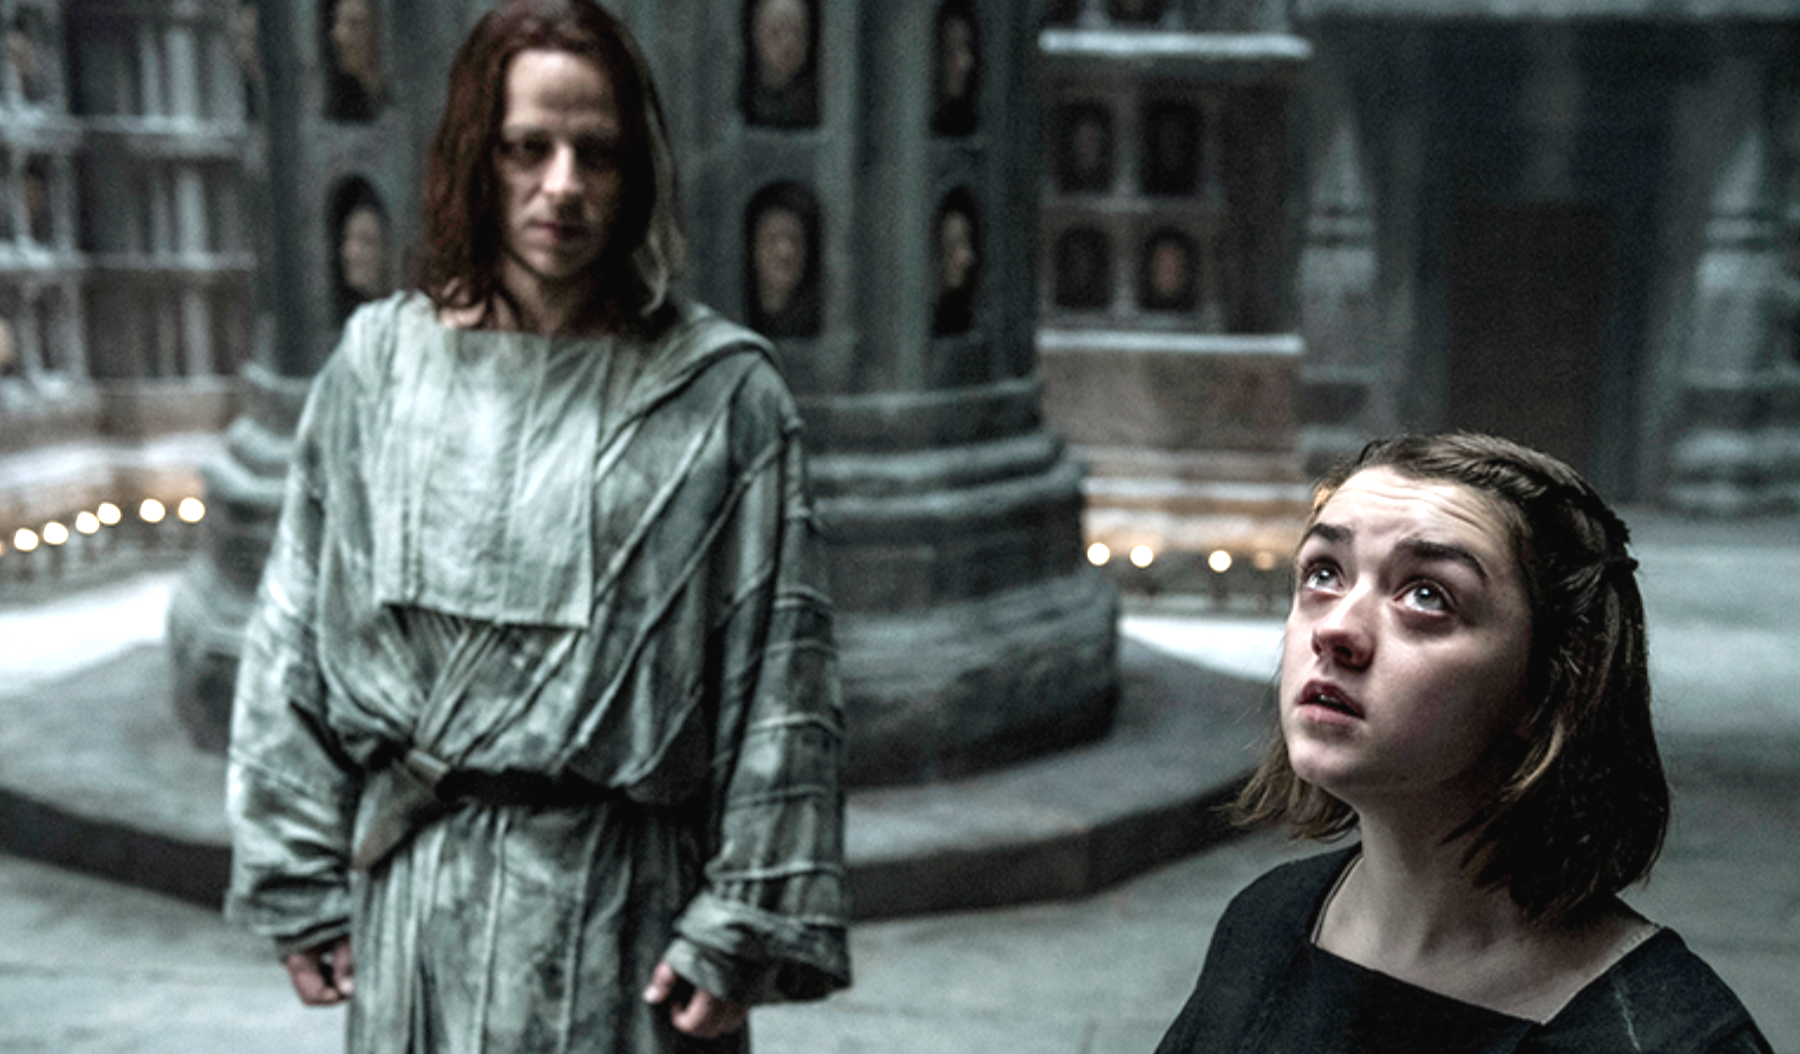 Game Of Thrones (2011-) Tom Wlaschiha (Jagen H'gher) & Maisie Williams (Arya Stark)